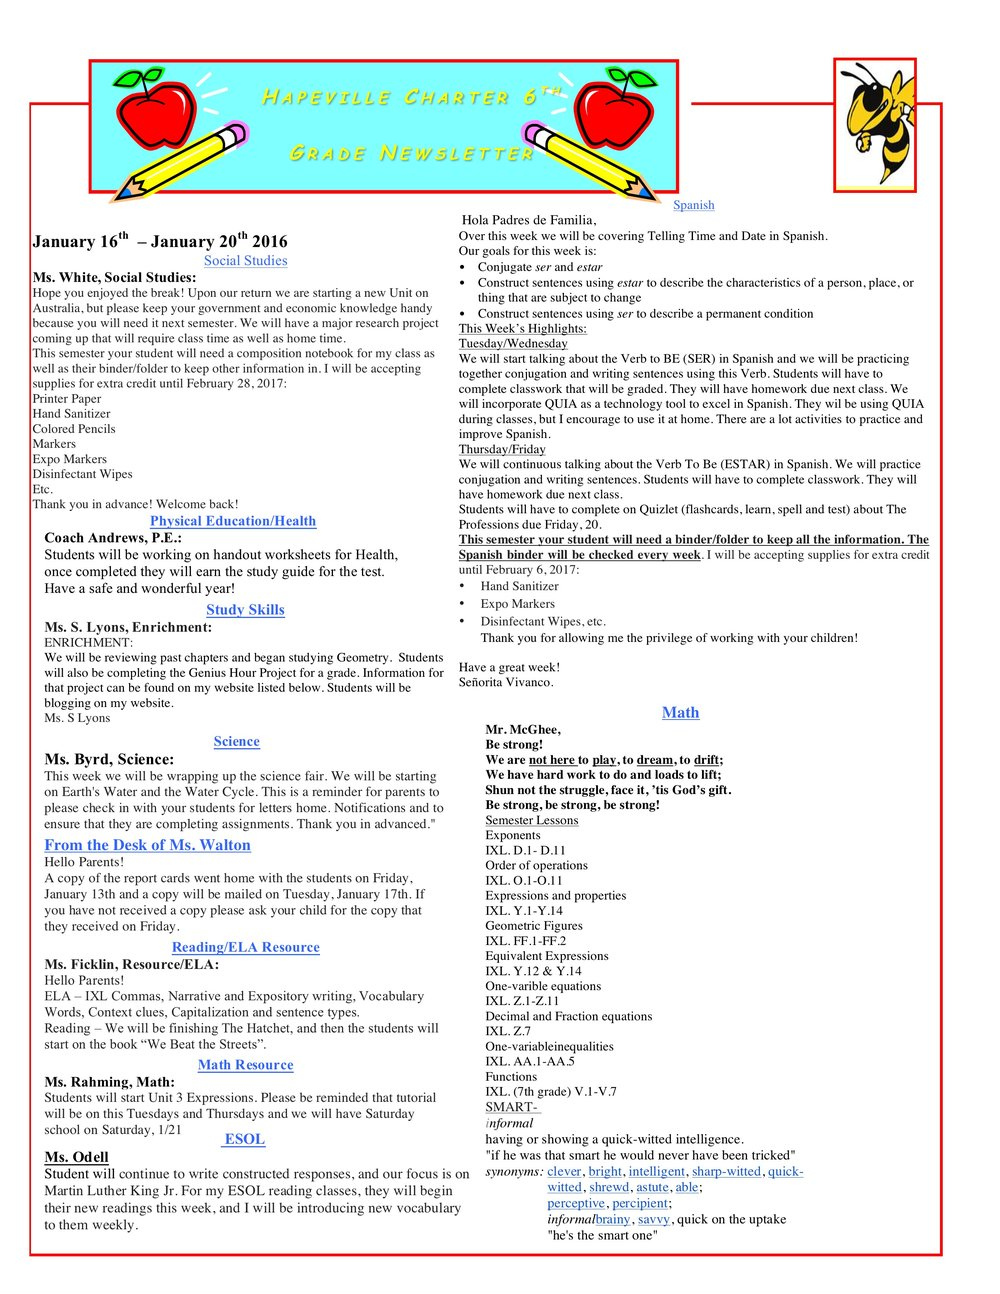 Newsletter Image6th Grade Newsletter 1-16.jpeg